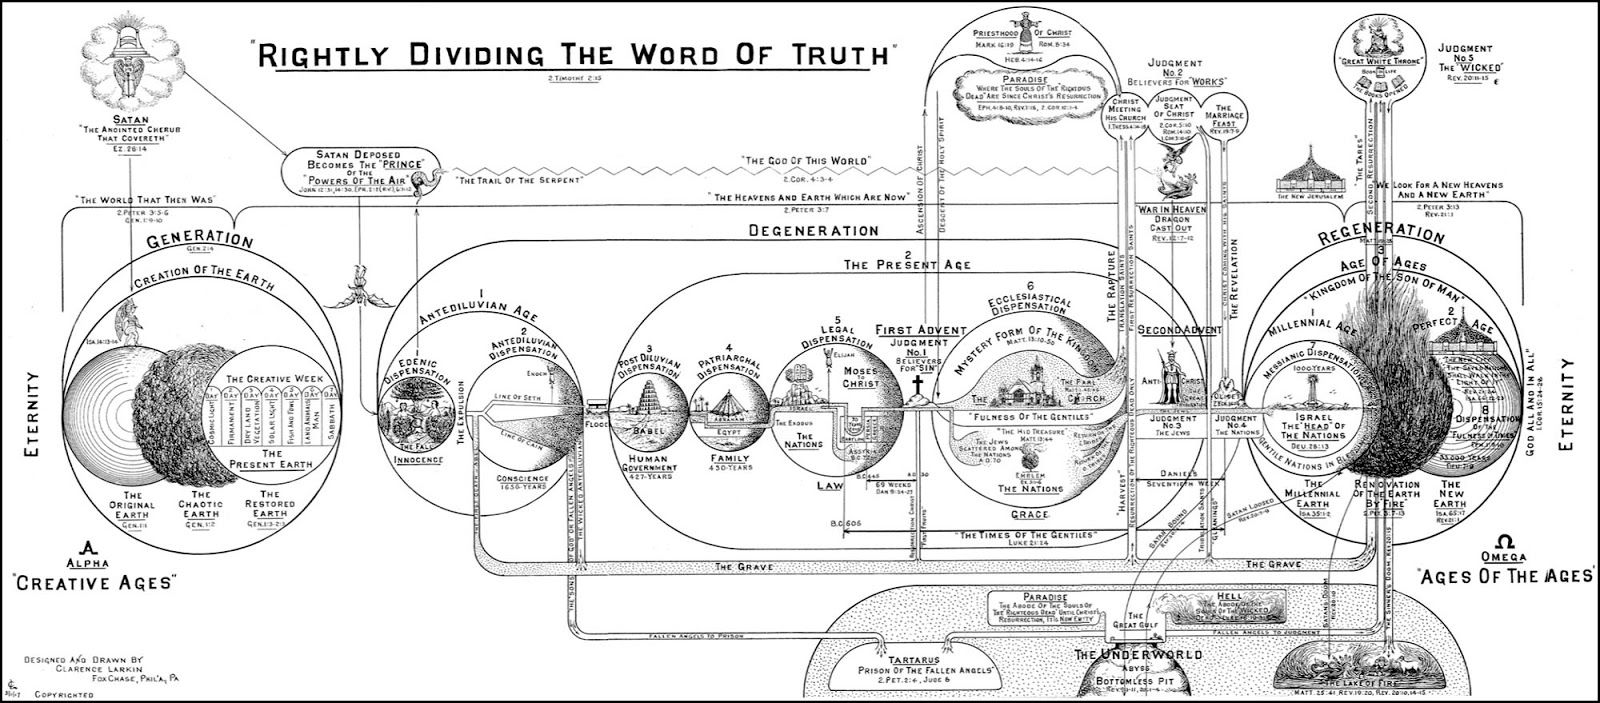 Who Is Defending Classic Dispensationalism Today?